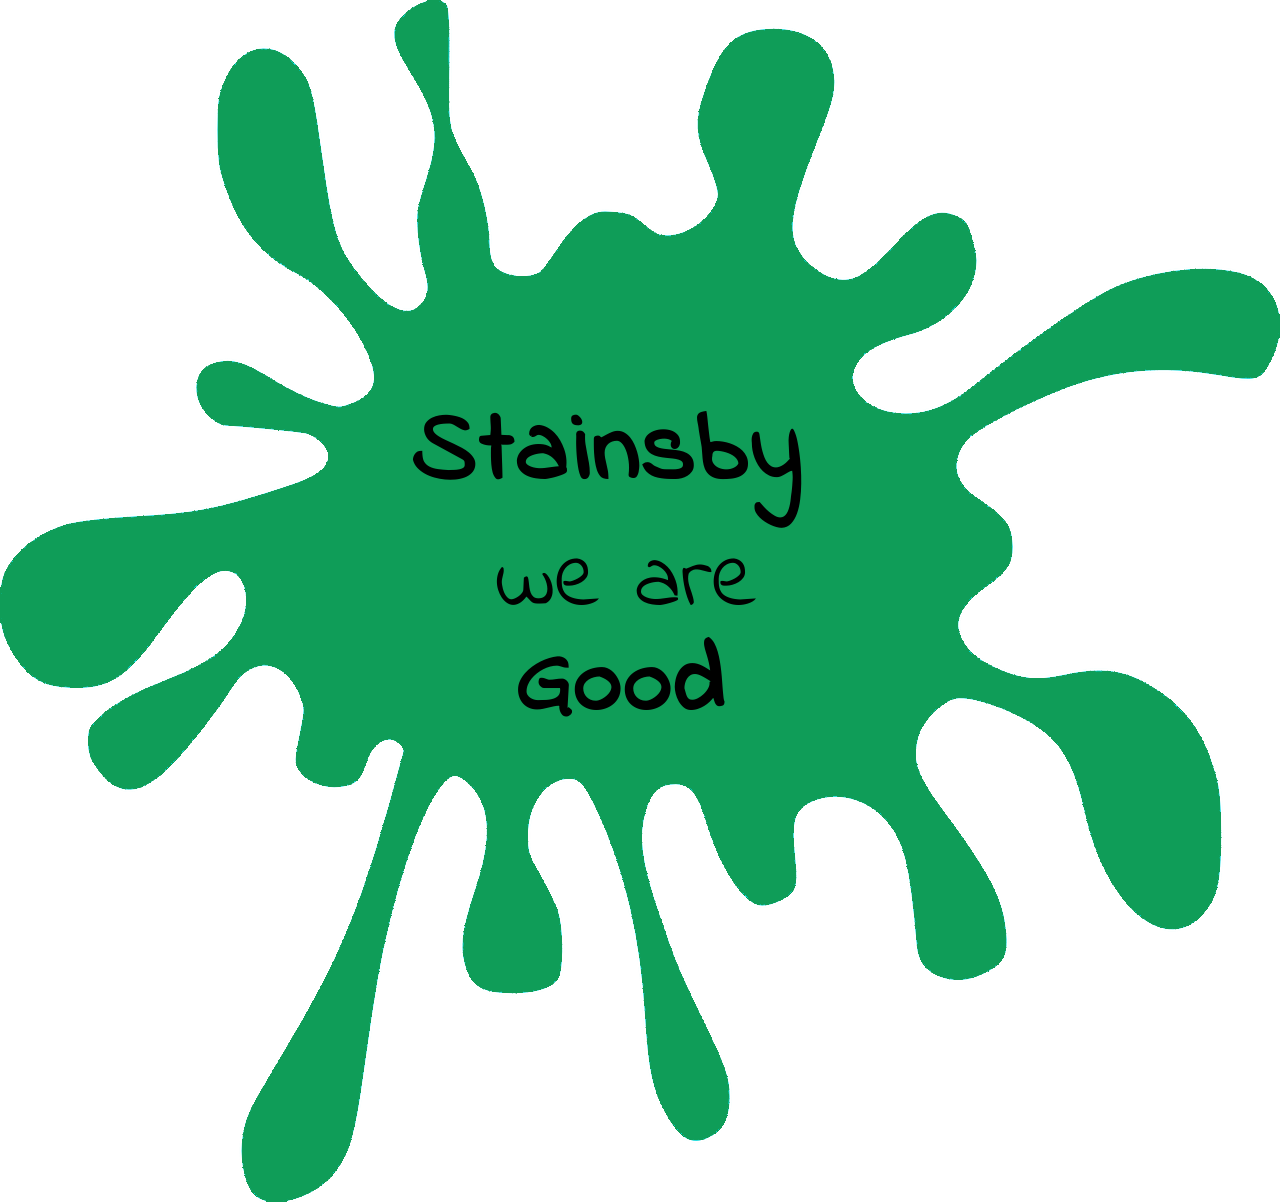 Stainsby is Ofsted rated Good